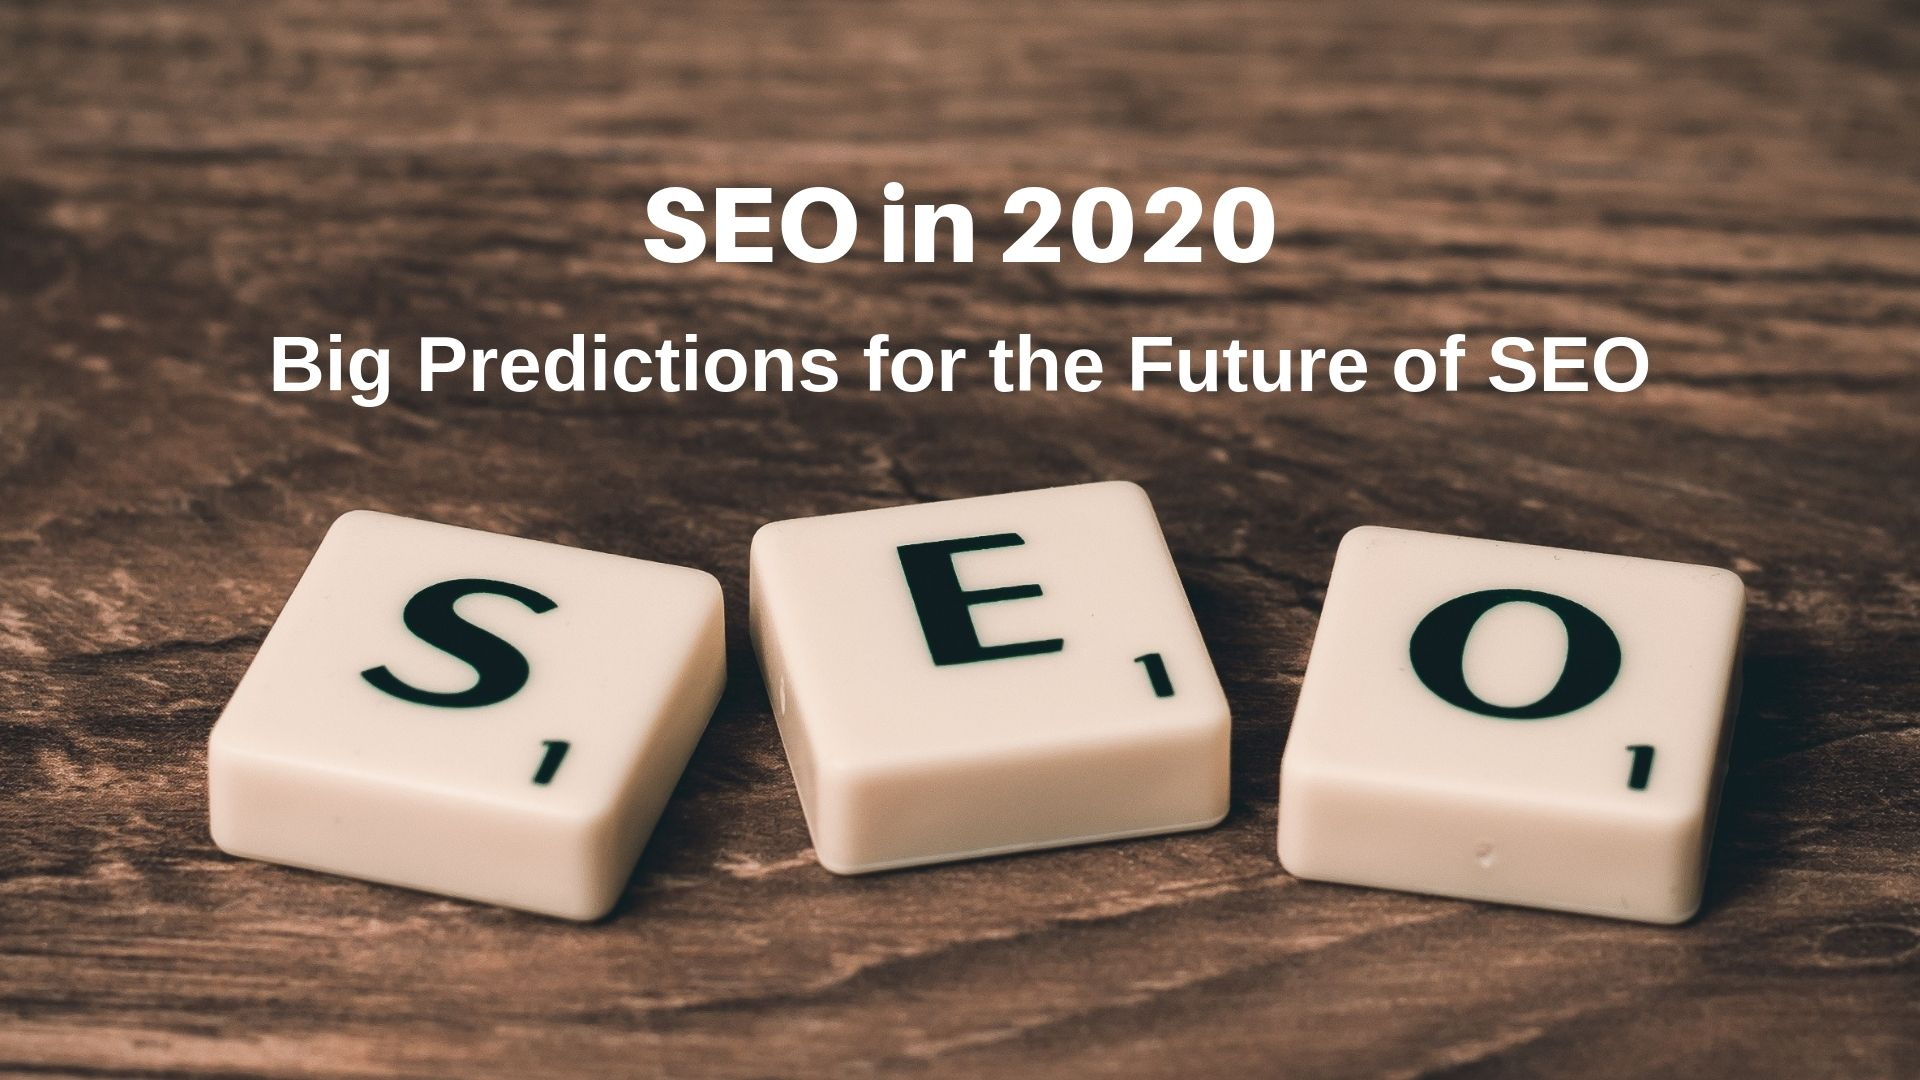 2020 Trinity - Scientifically Proven Digital Strategies - Google SEO